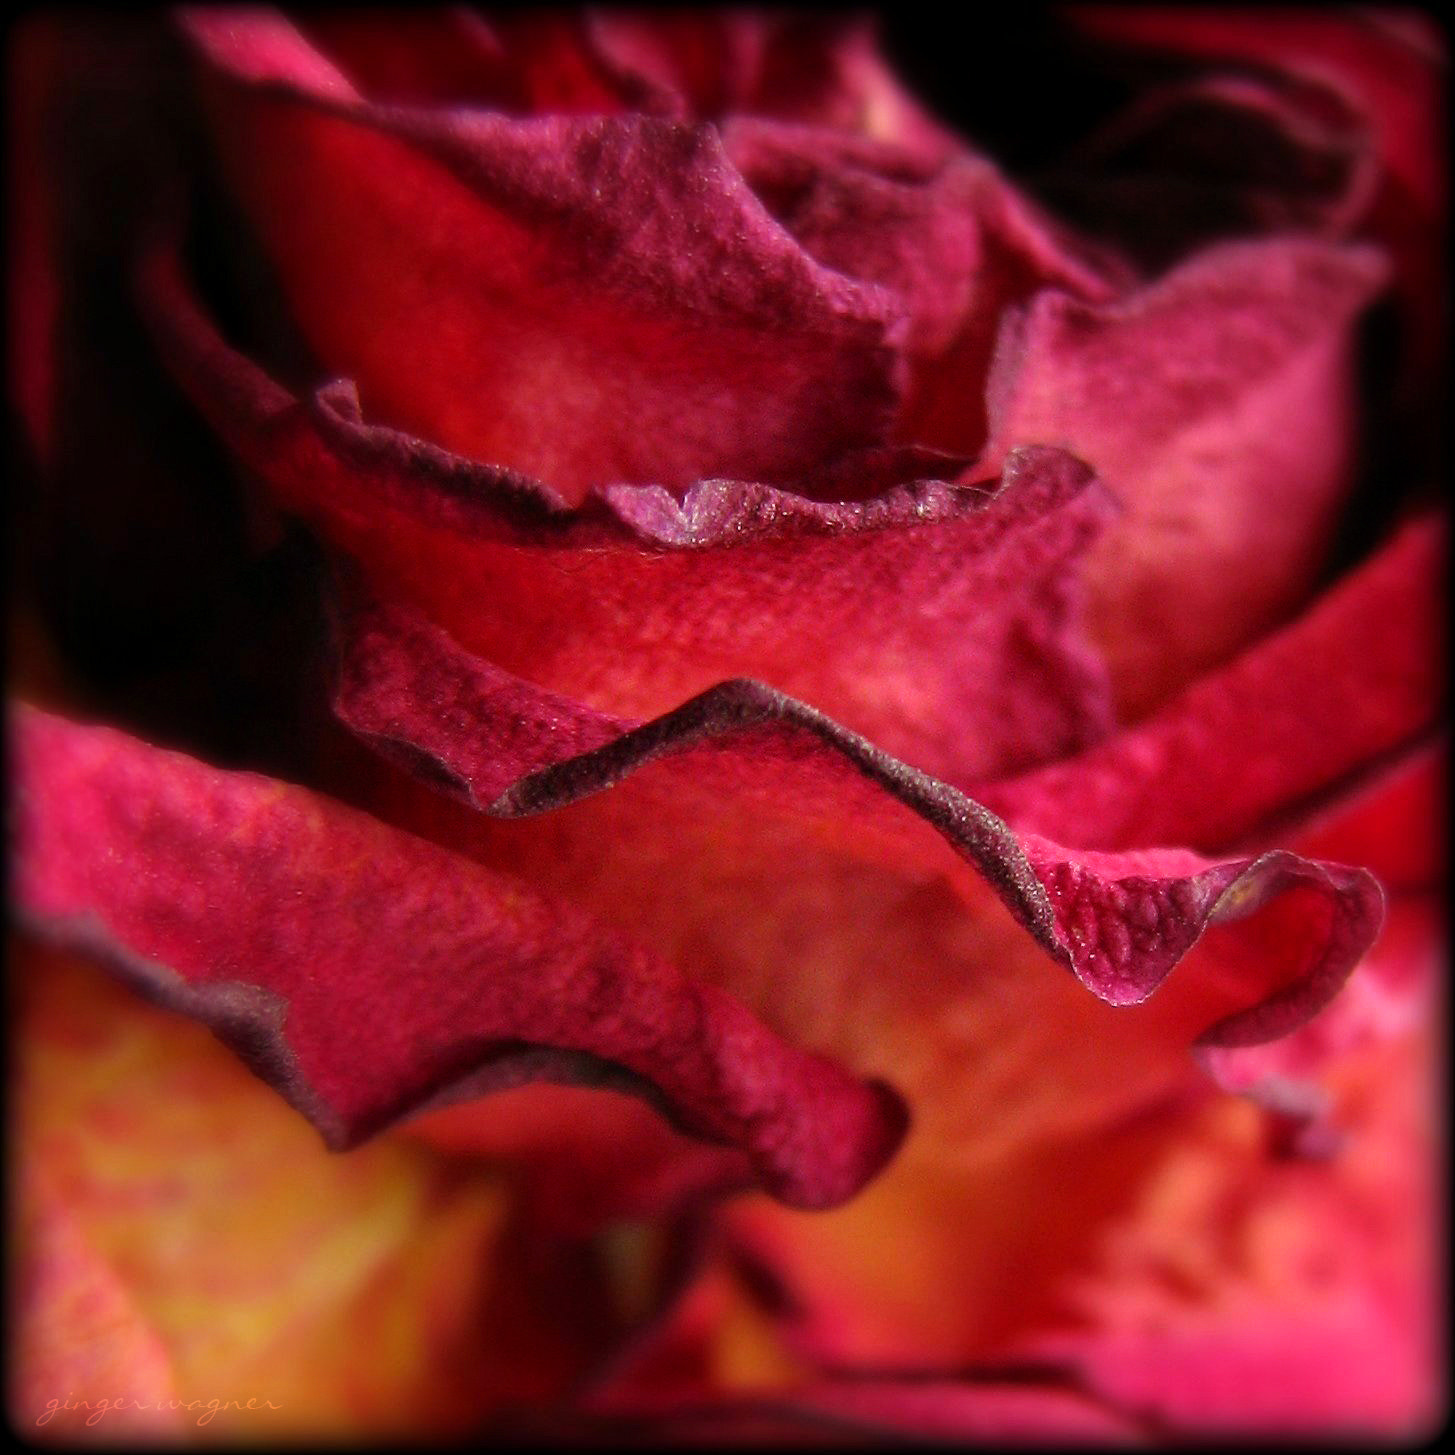 Photograph my son's rose by Ginger Wagner on 500px